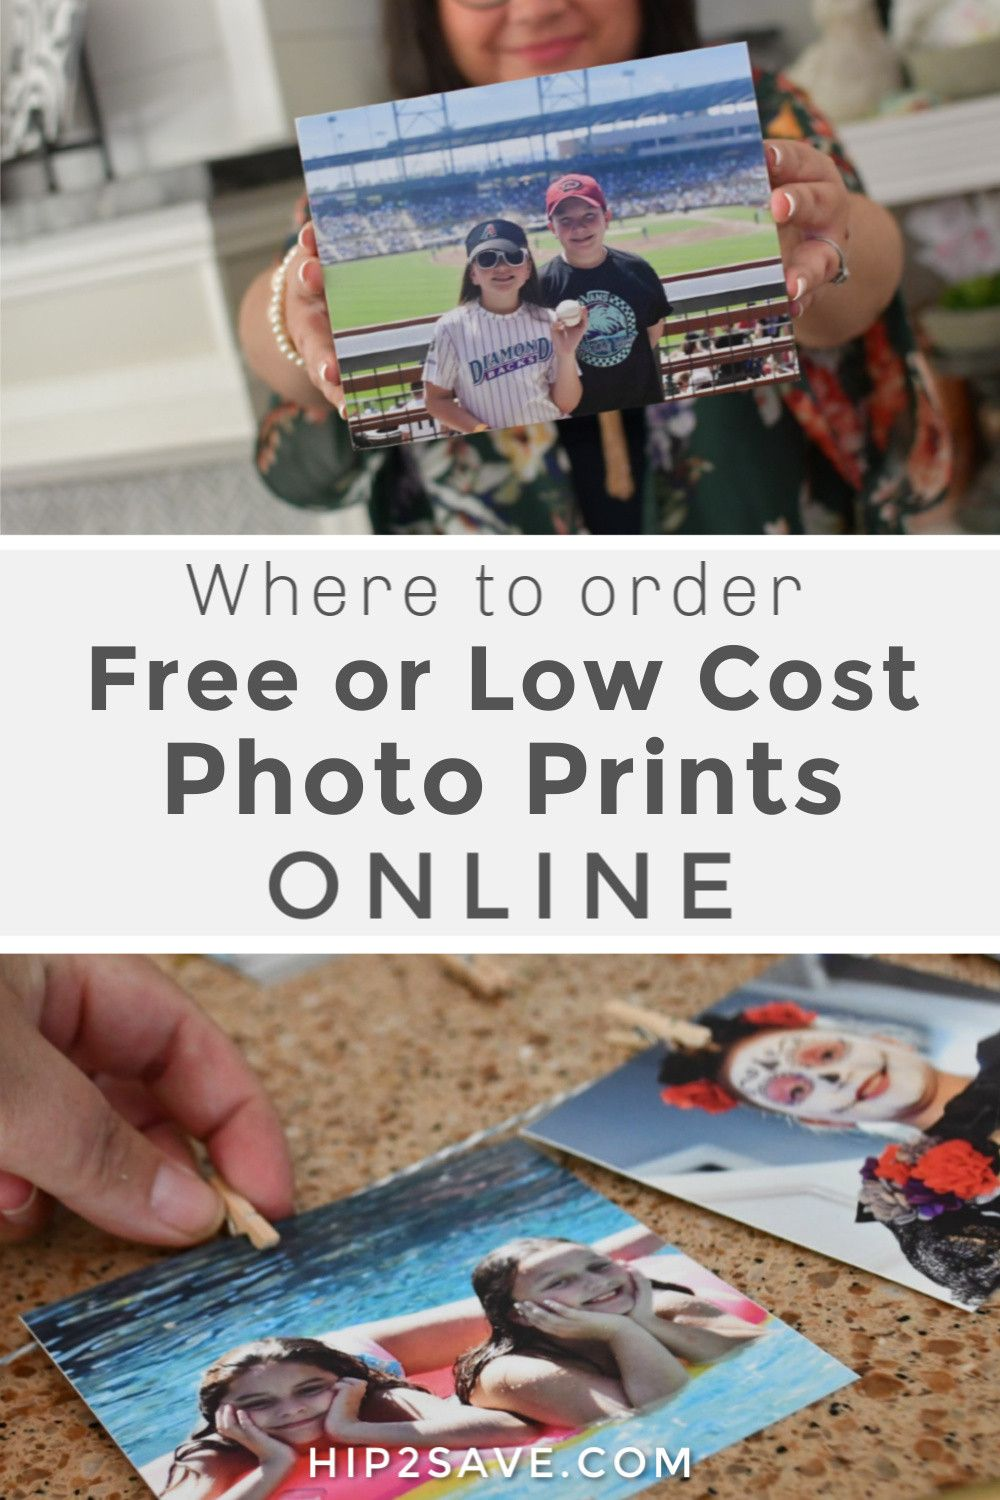 Photo prints to the rescue! 🙌🏻 And, ordering photo prints